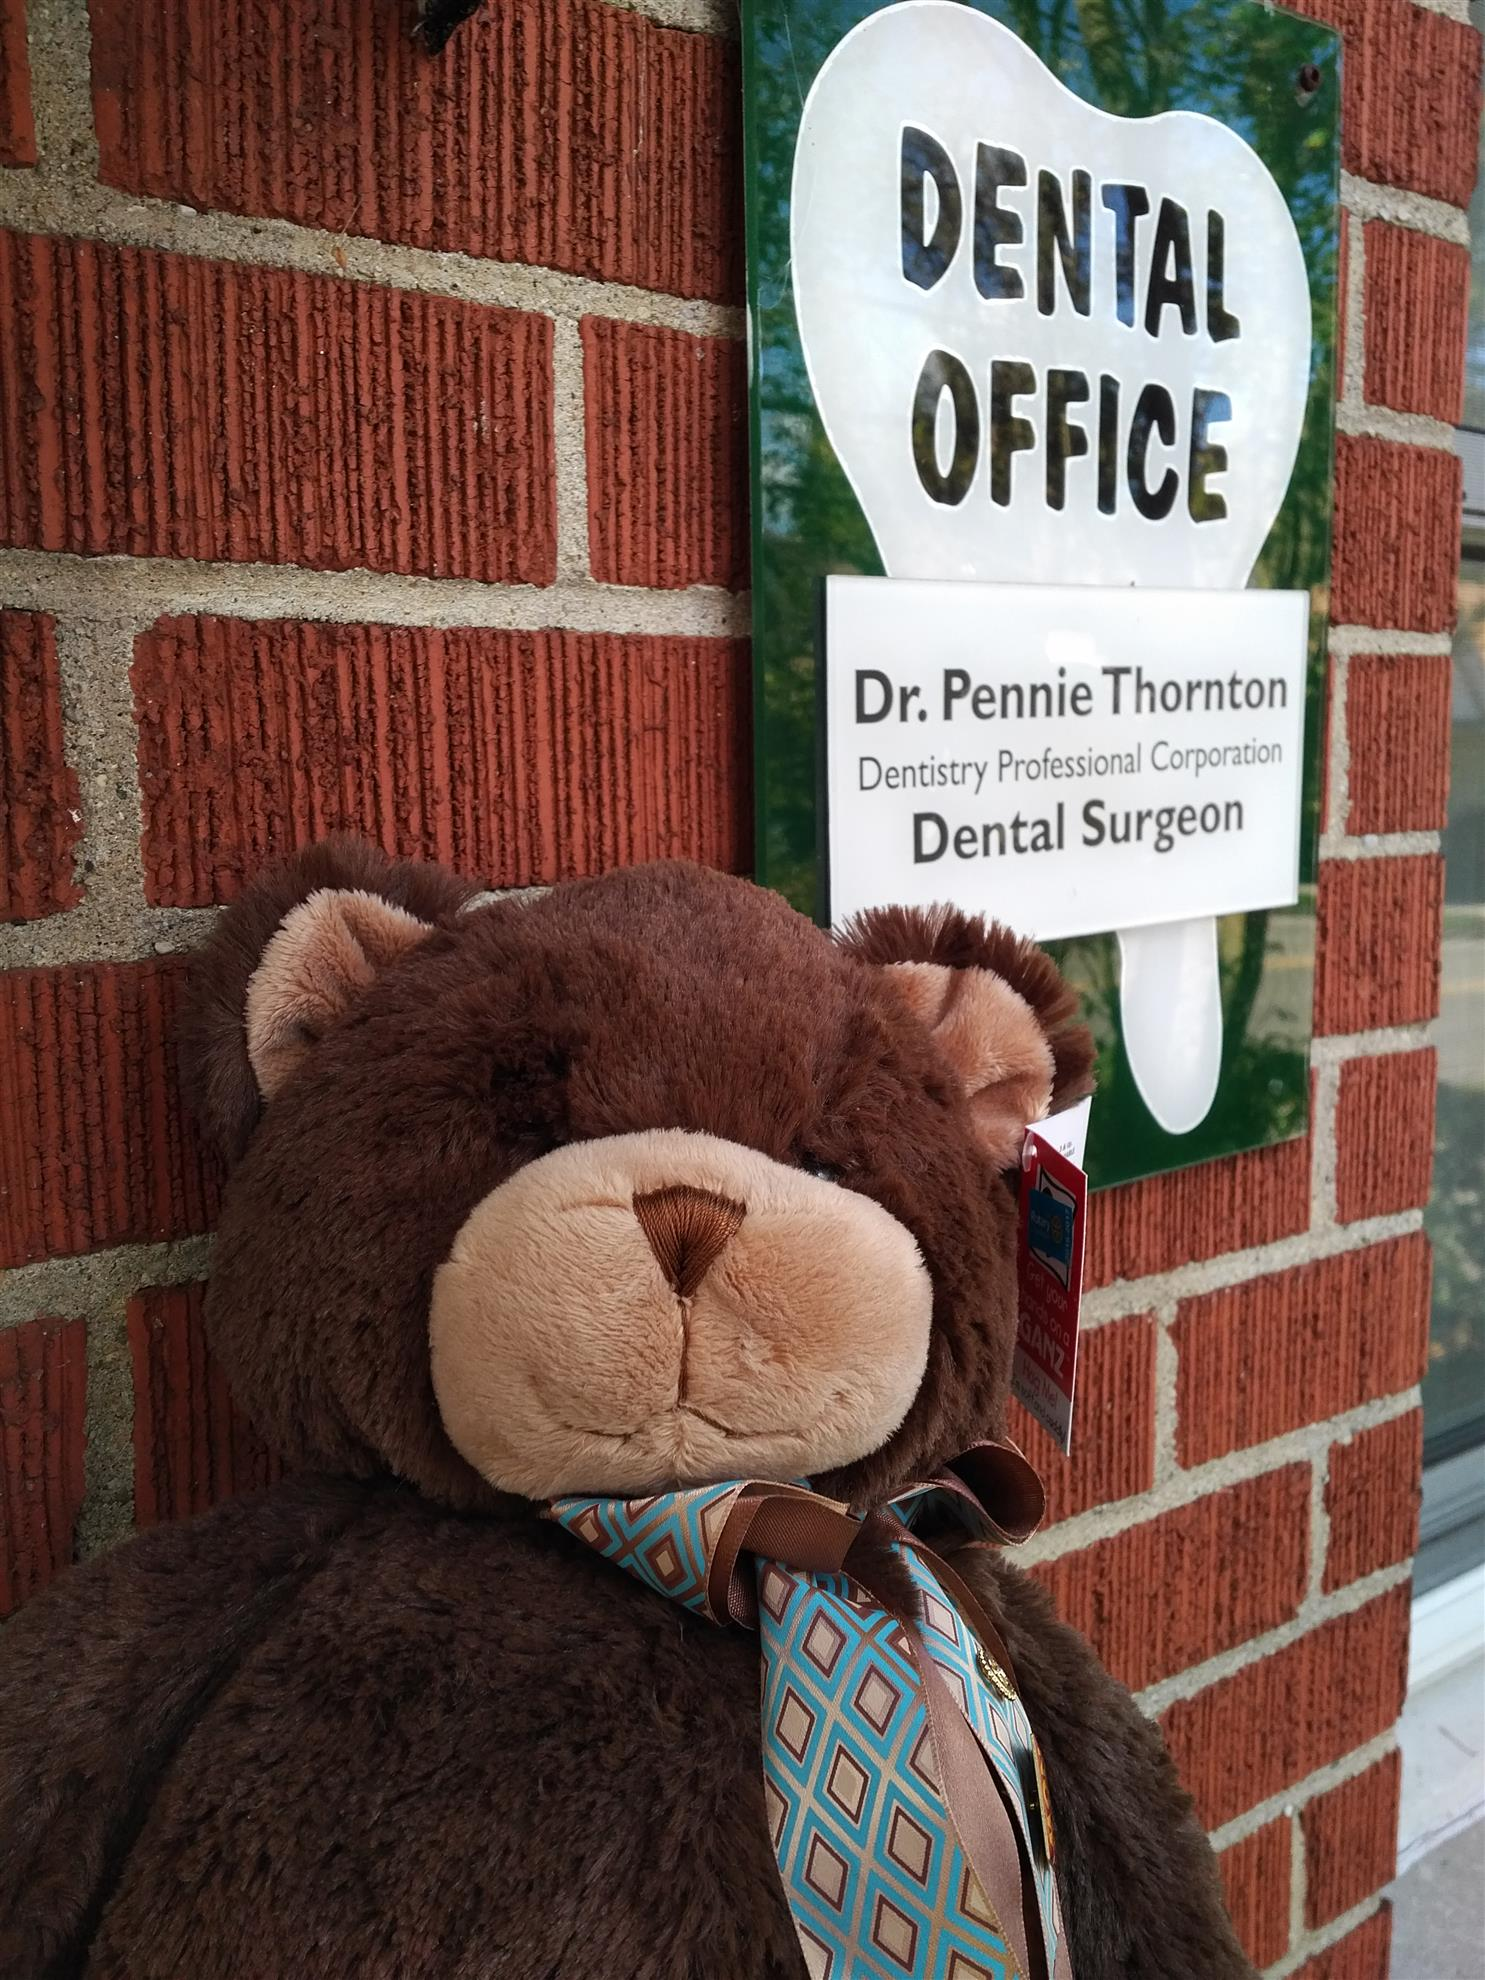 07. LHP Visits the Dentist